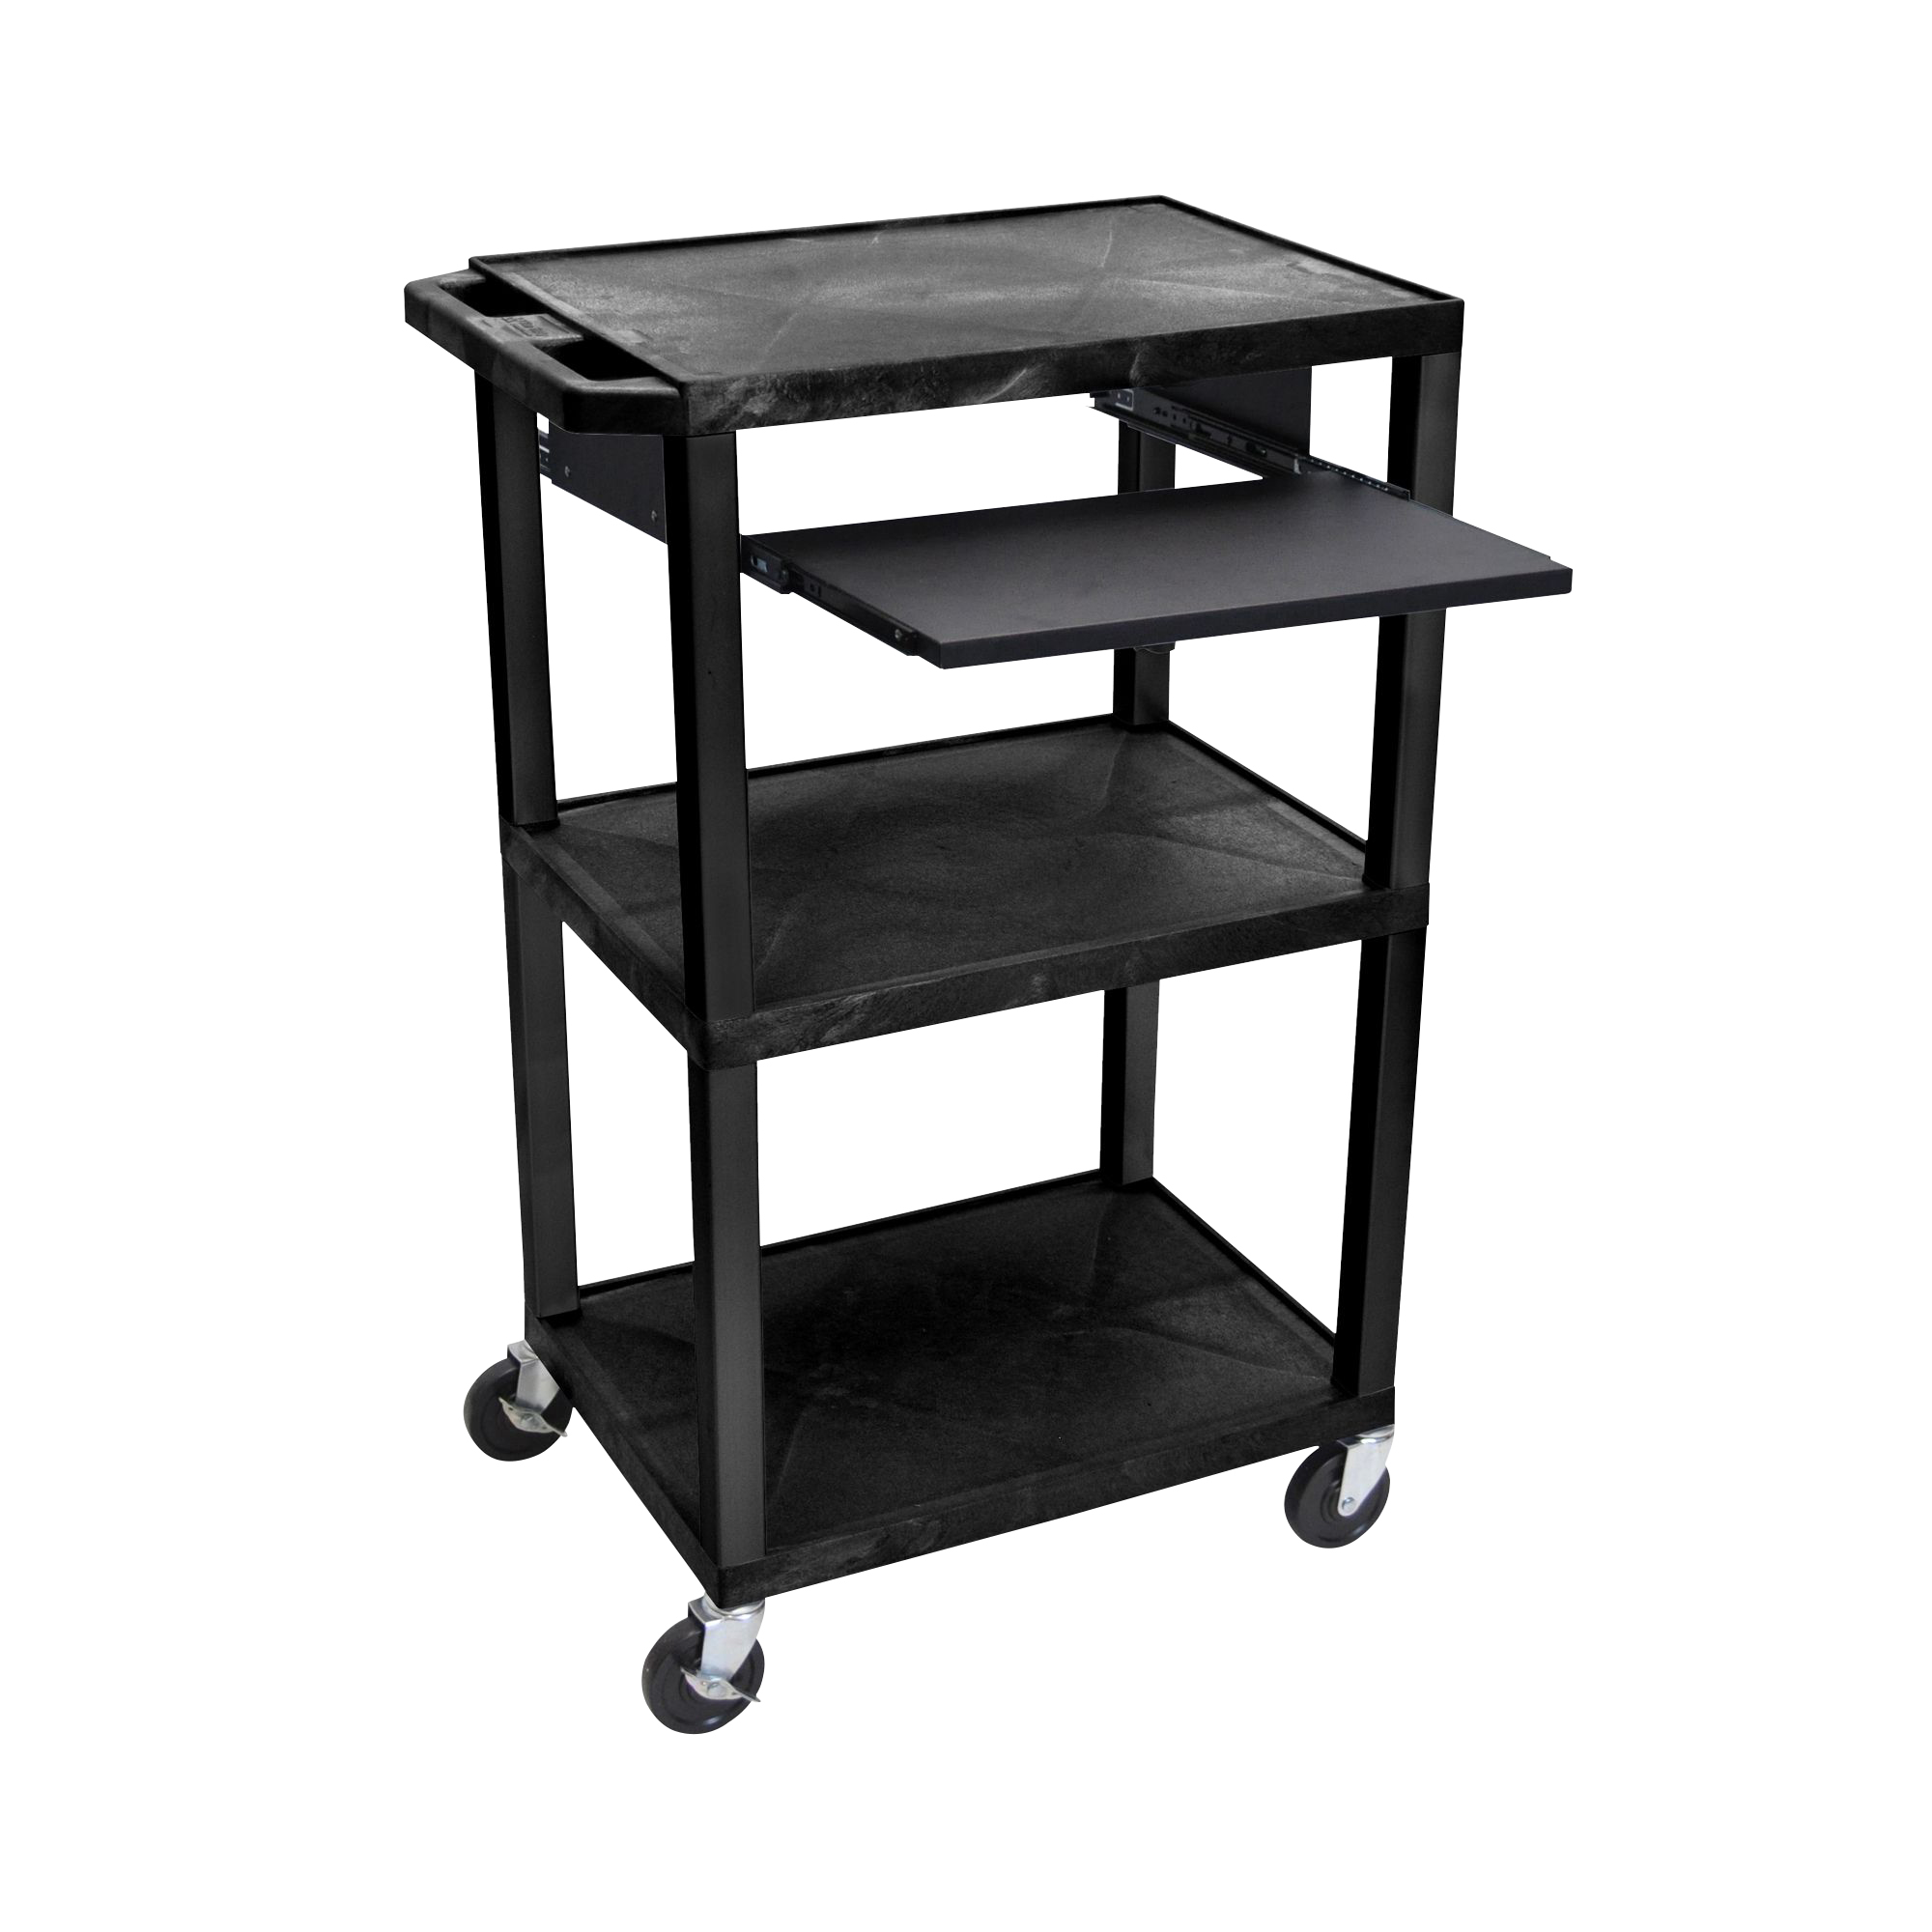 Offex Presentation Cart with Open Shelves and Pull Out Tray Black